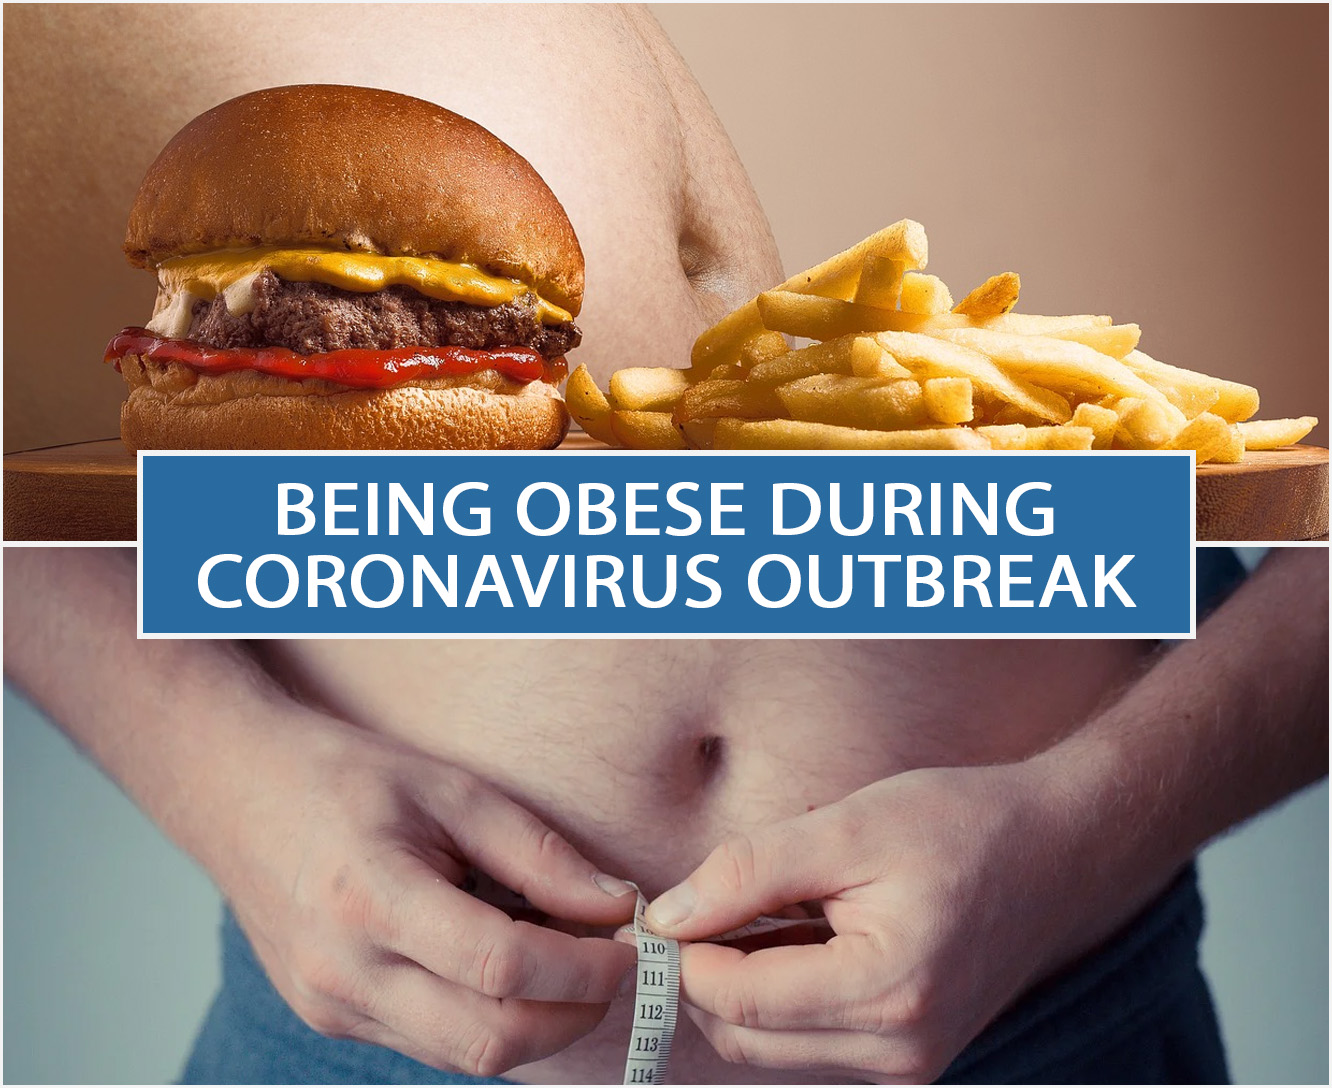 BEING OBESE DURING CORONAVIRUS OUTBREAK